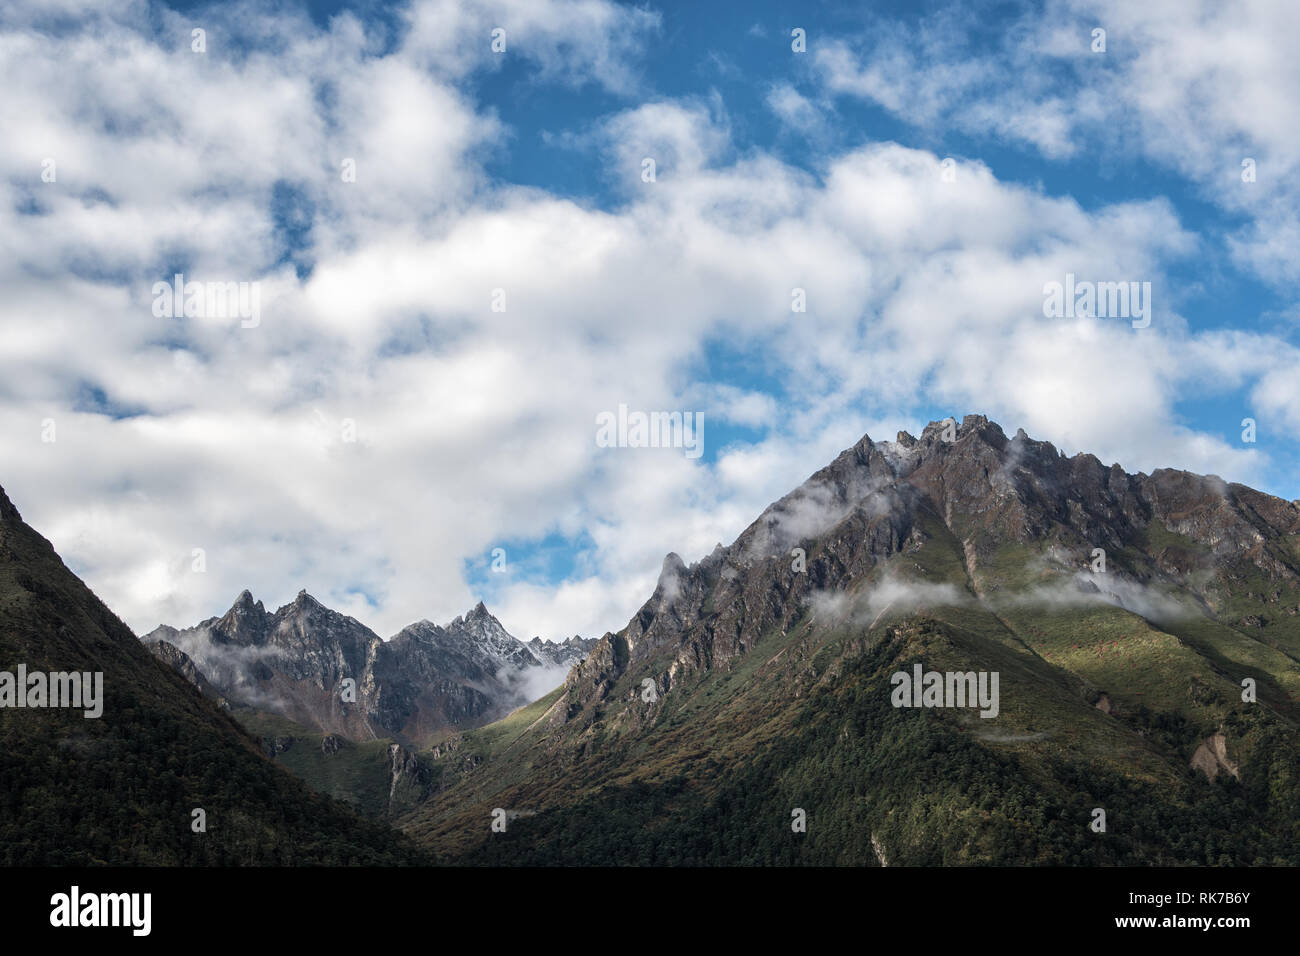 Clouds and mountains from Laya, Gasa District, Snowman Trek, Bhutan - Stock Image